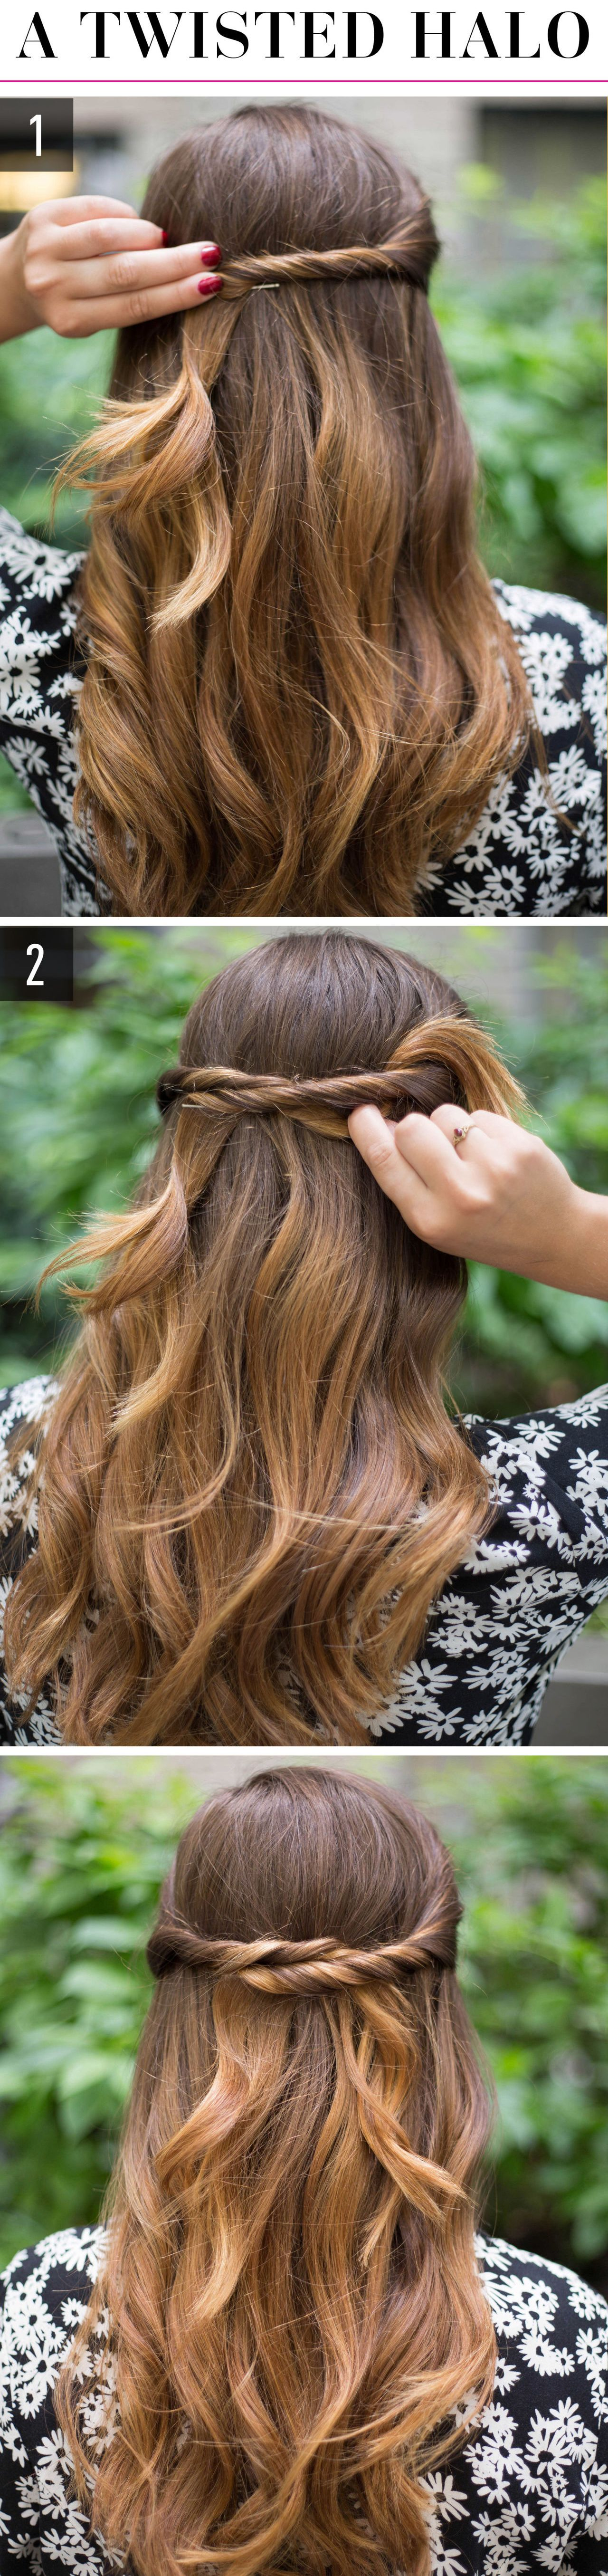 adorable and super easy hairstyles for lazy girls who cant even